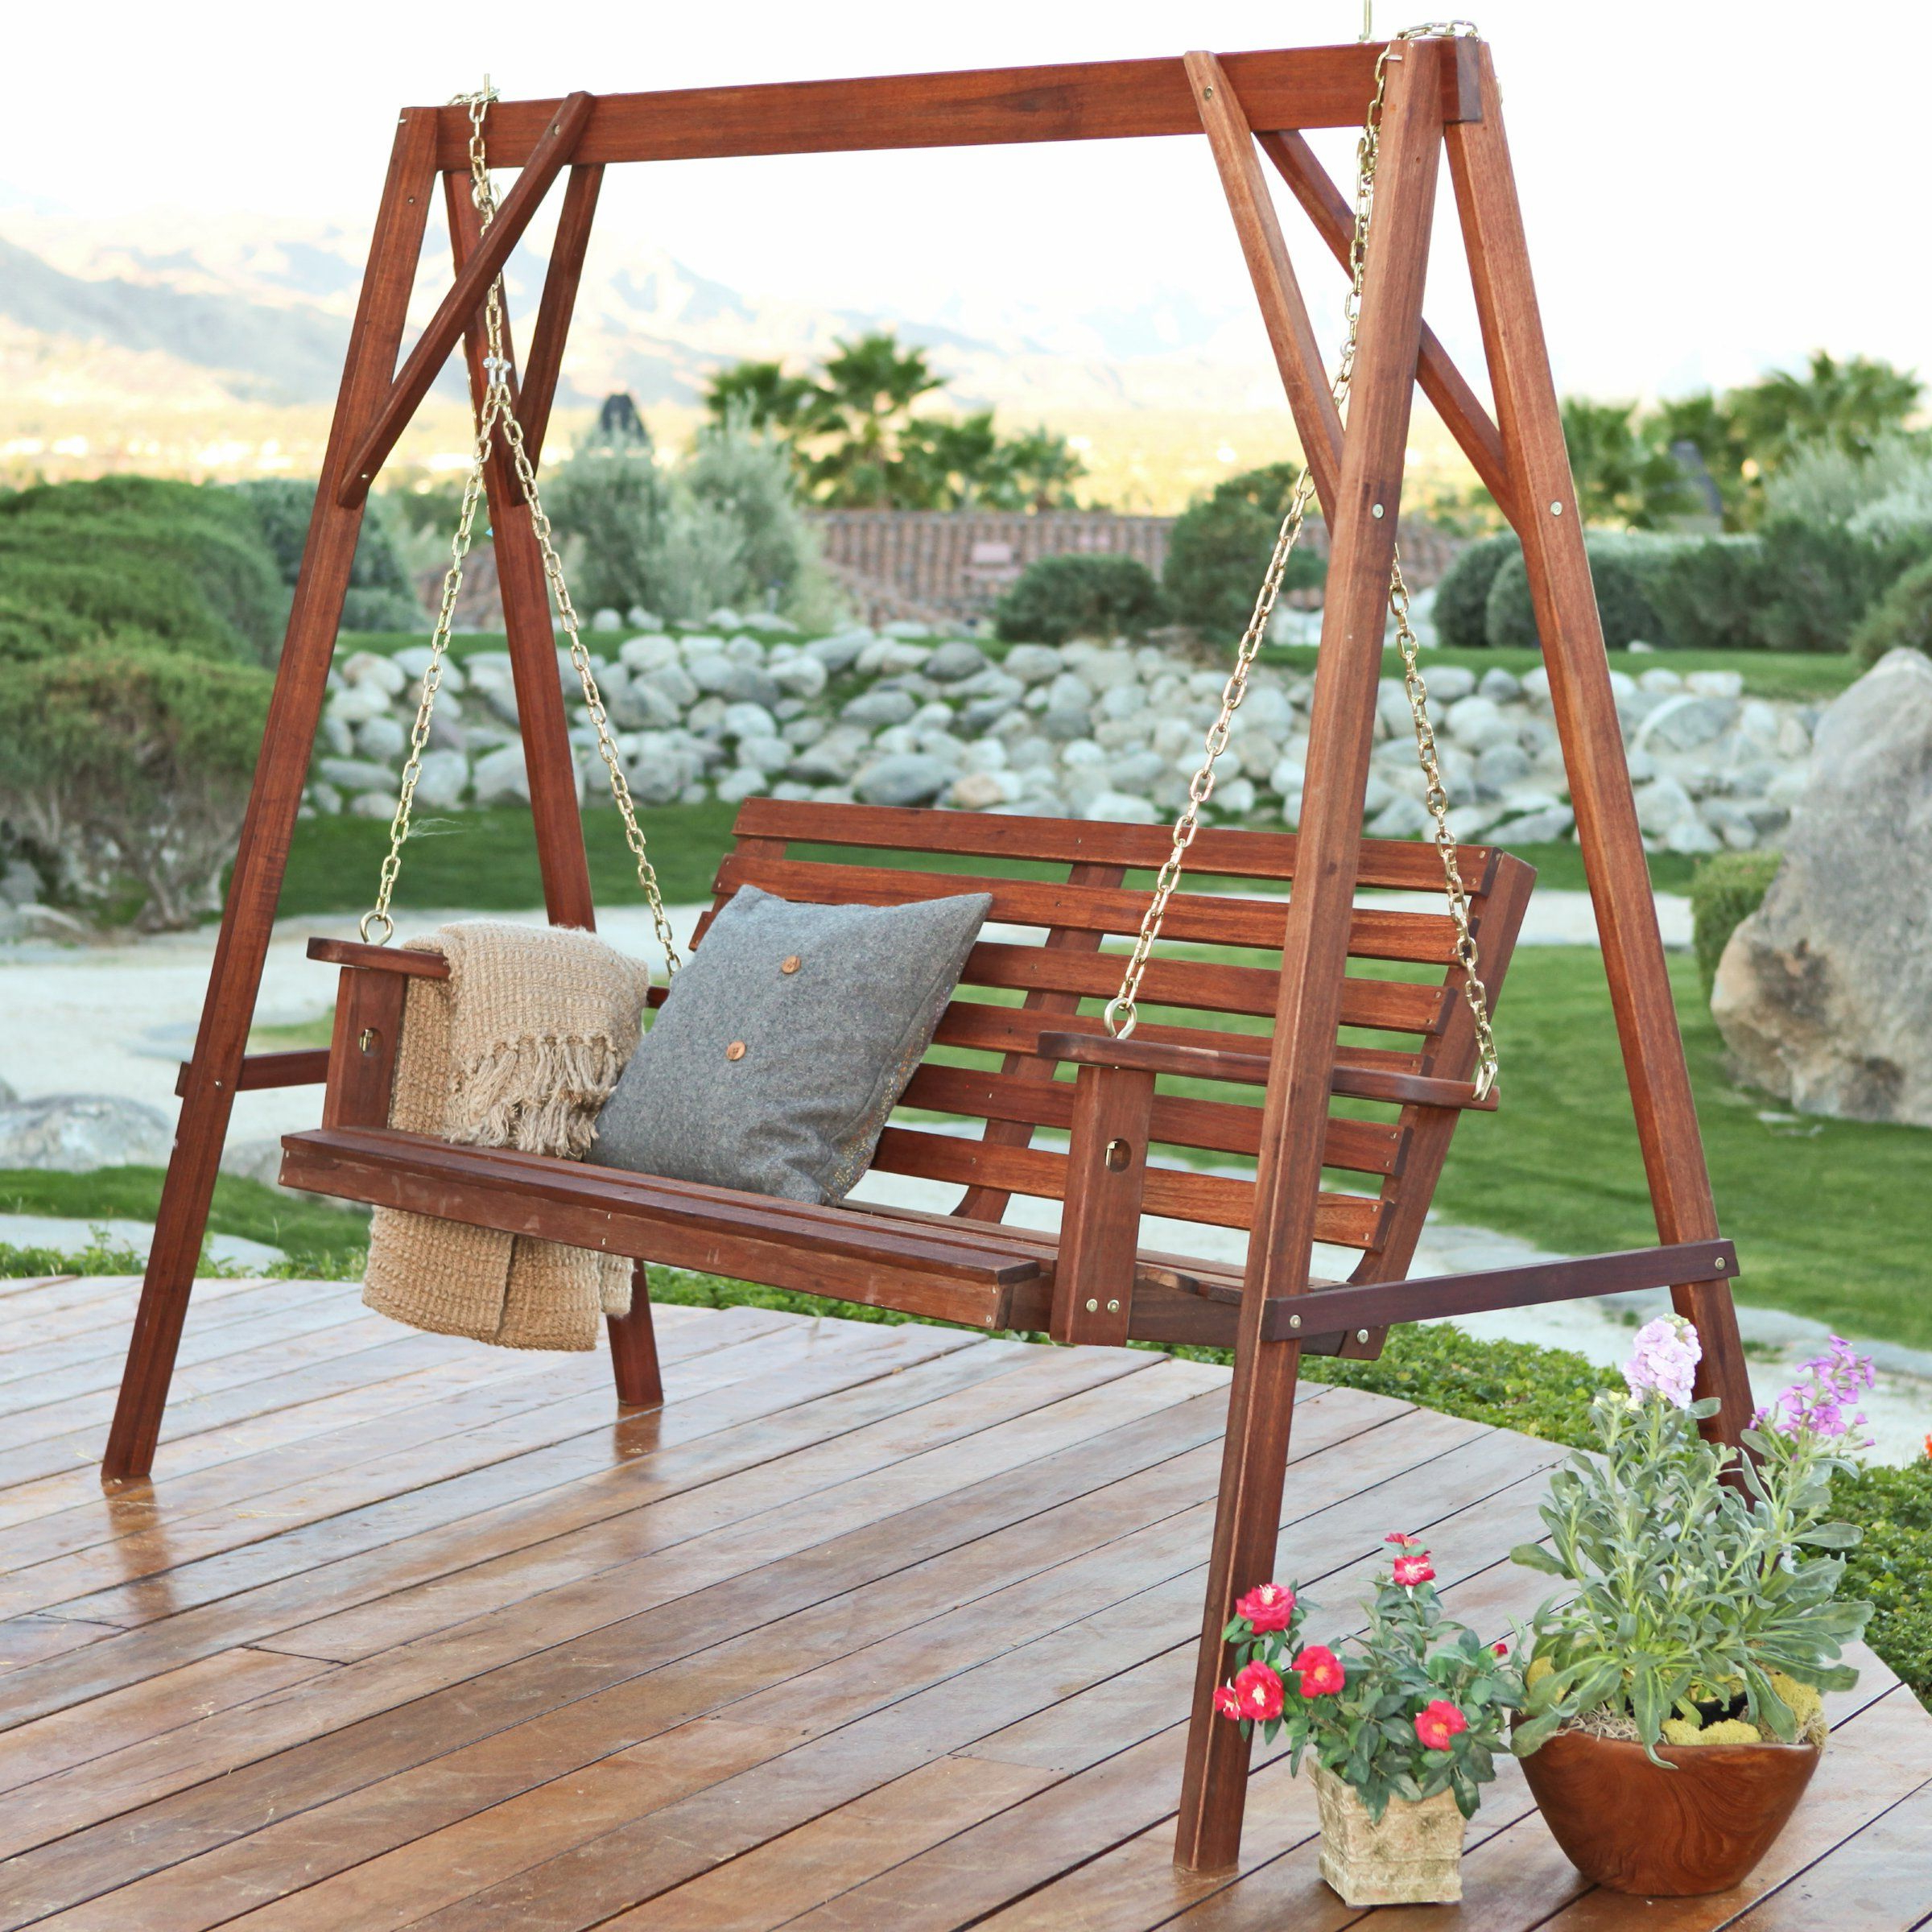 Belham Living Bay Ridge Porch Swing – Porch Swings At Intended For Preferred Patio Porch Swings With Stand (View 3 of 25)